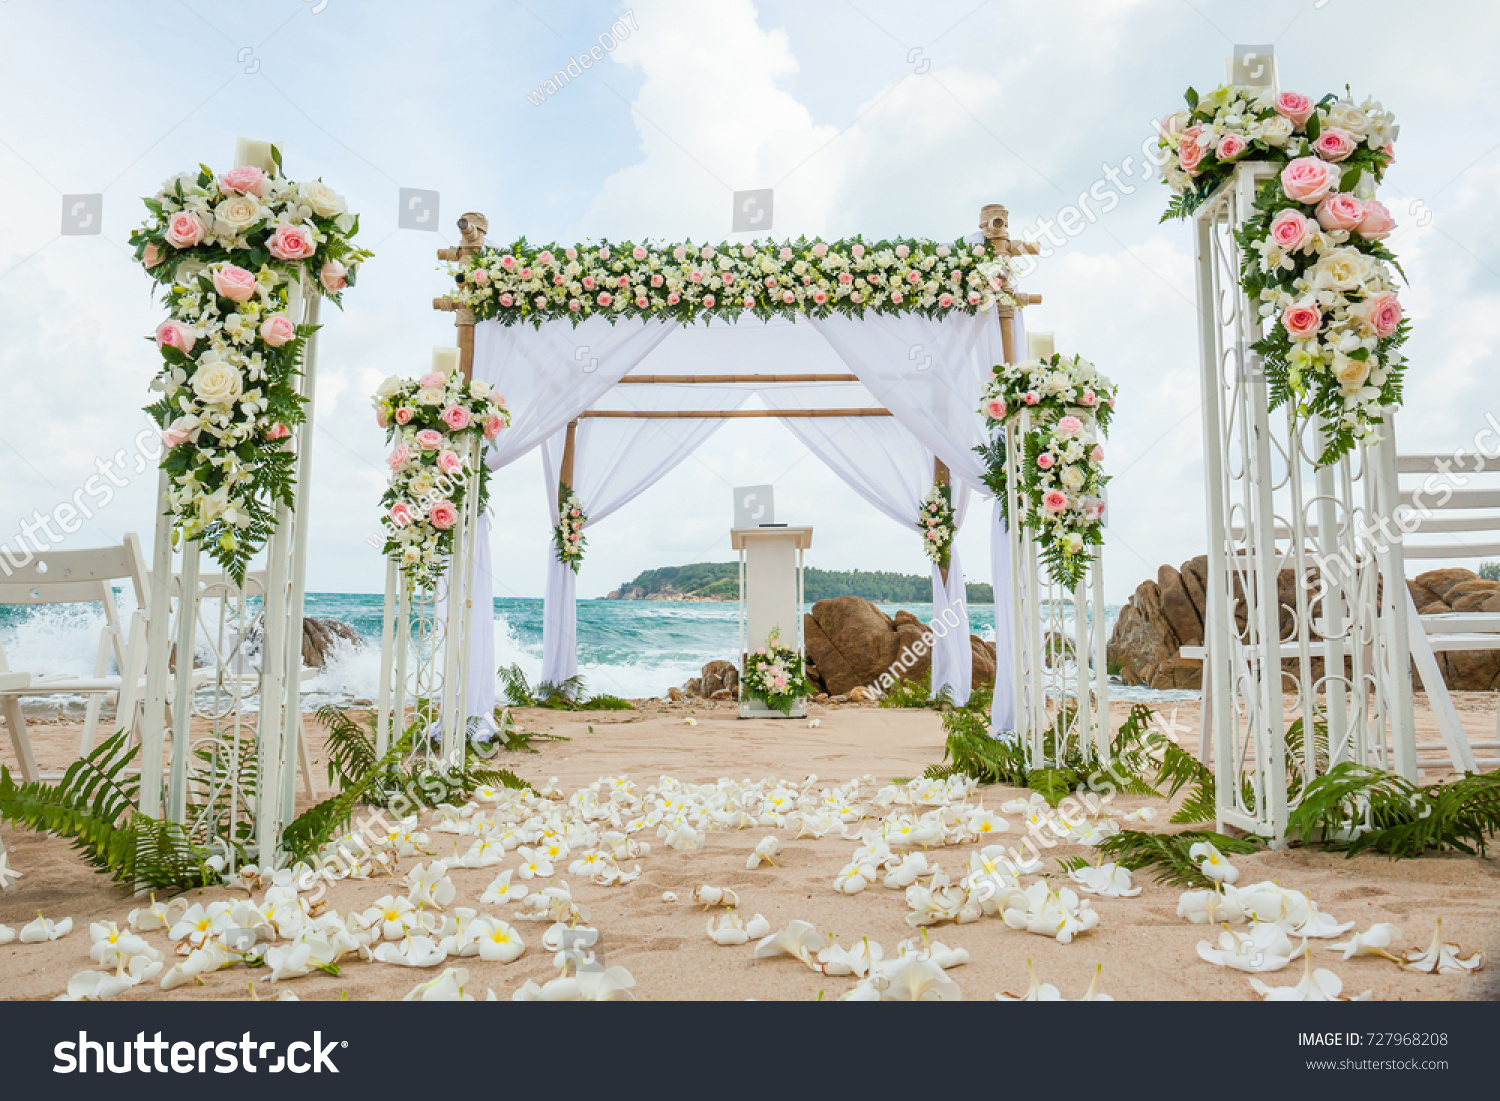 Beautiful Wedding Decorated On Beach Wedding Stock Photo (Edit Now)  727968208